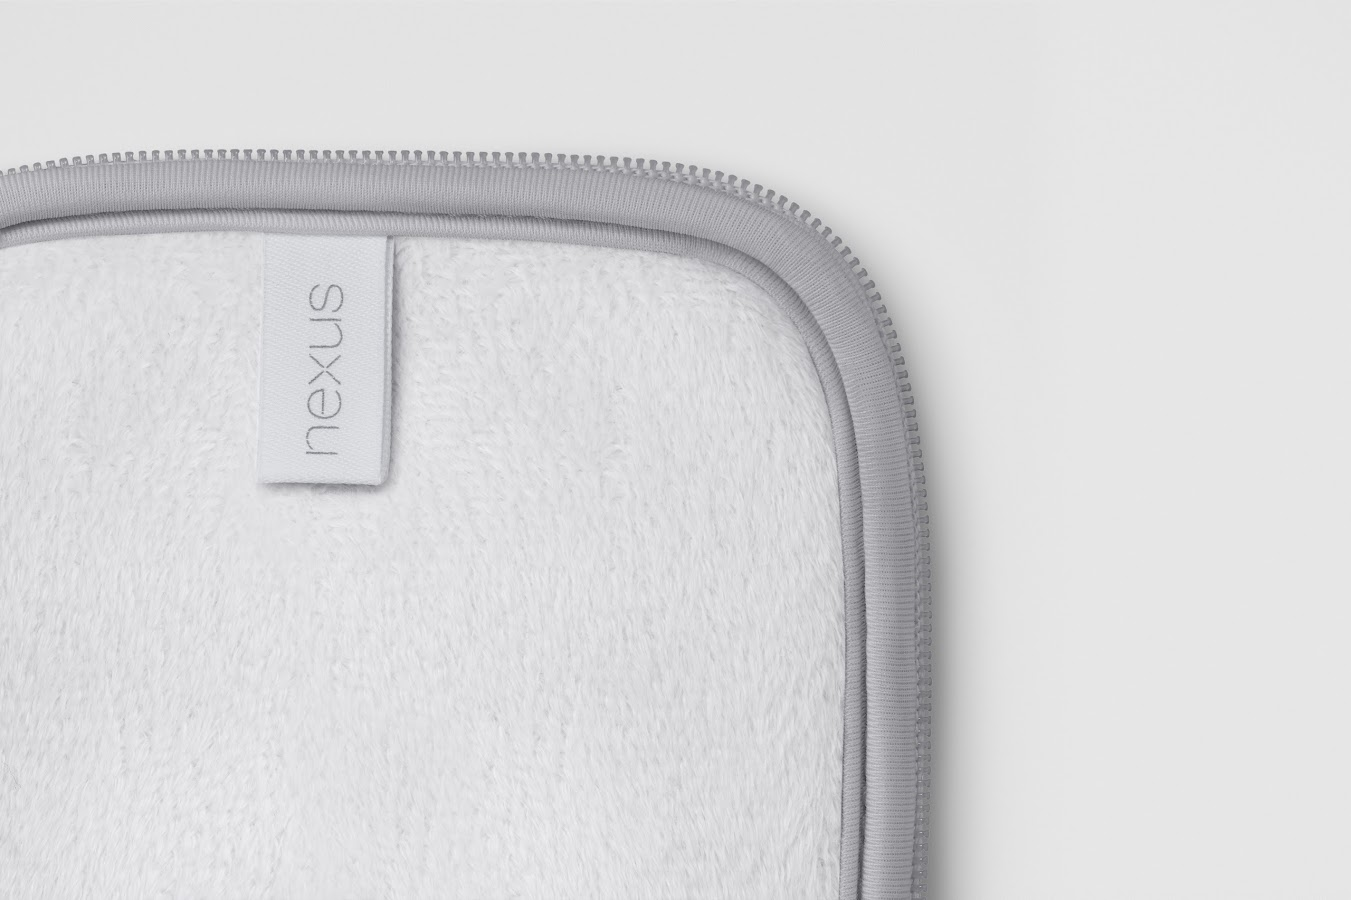 Nexus 7 Sleeve - Gray/White - screenshot